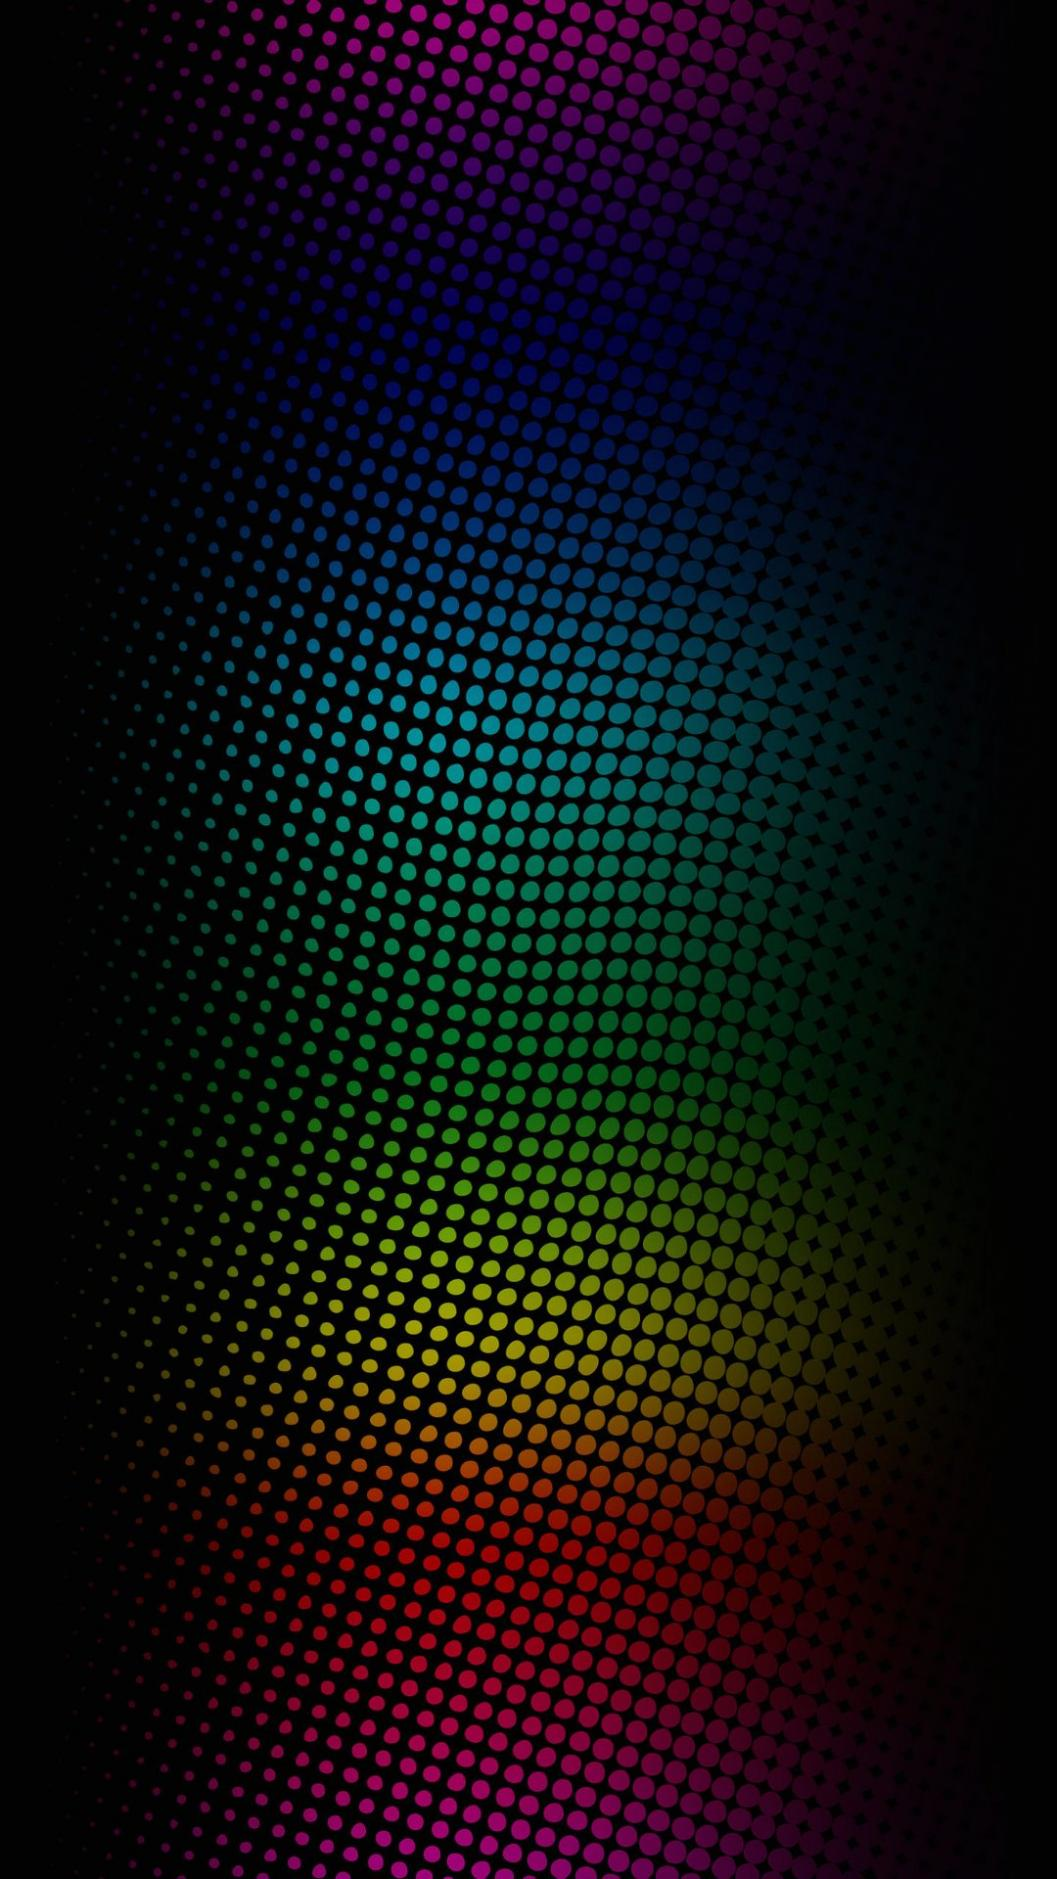 Htc one m8 wallpaper size wallpapersafari - Htc one m8 stock wallpapers ...